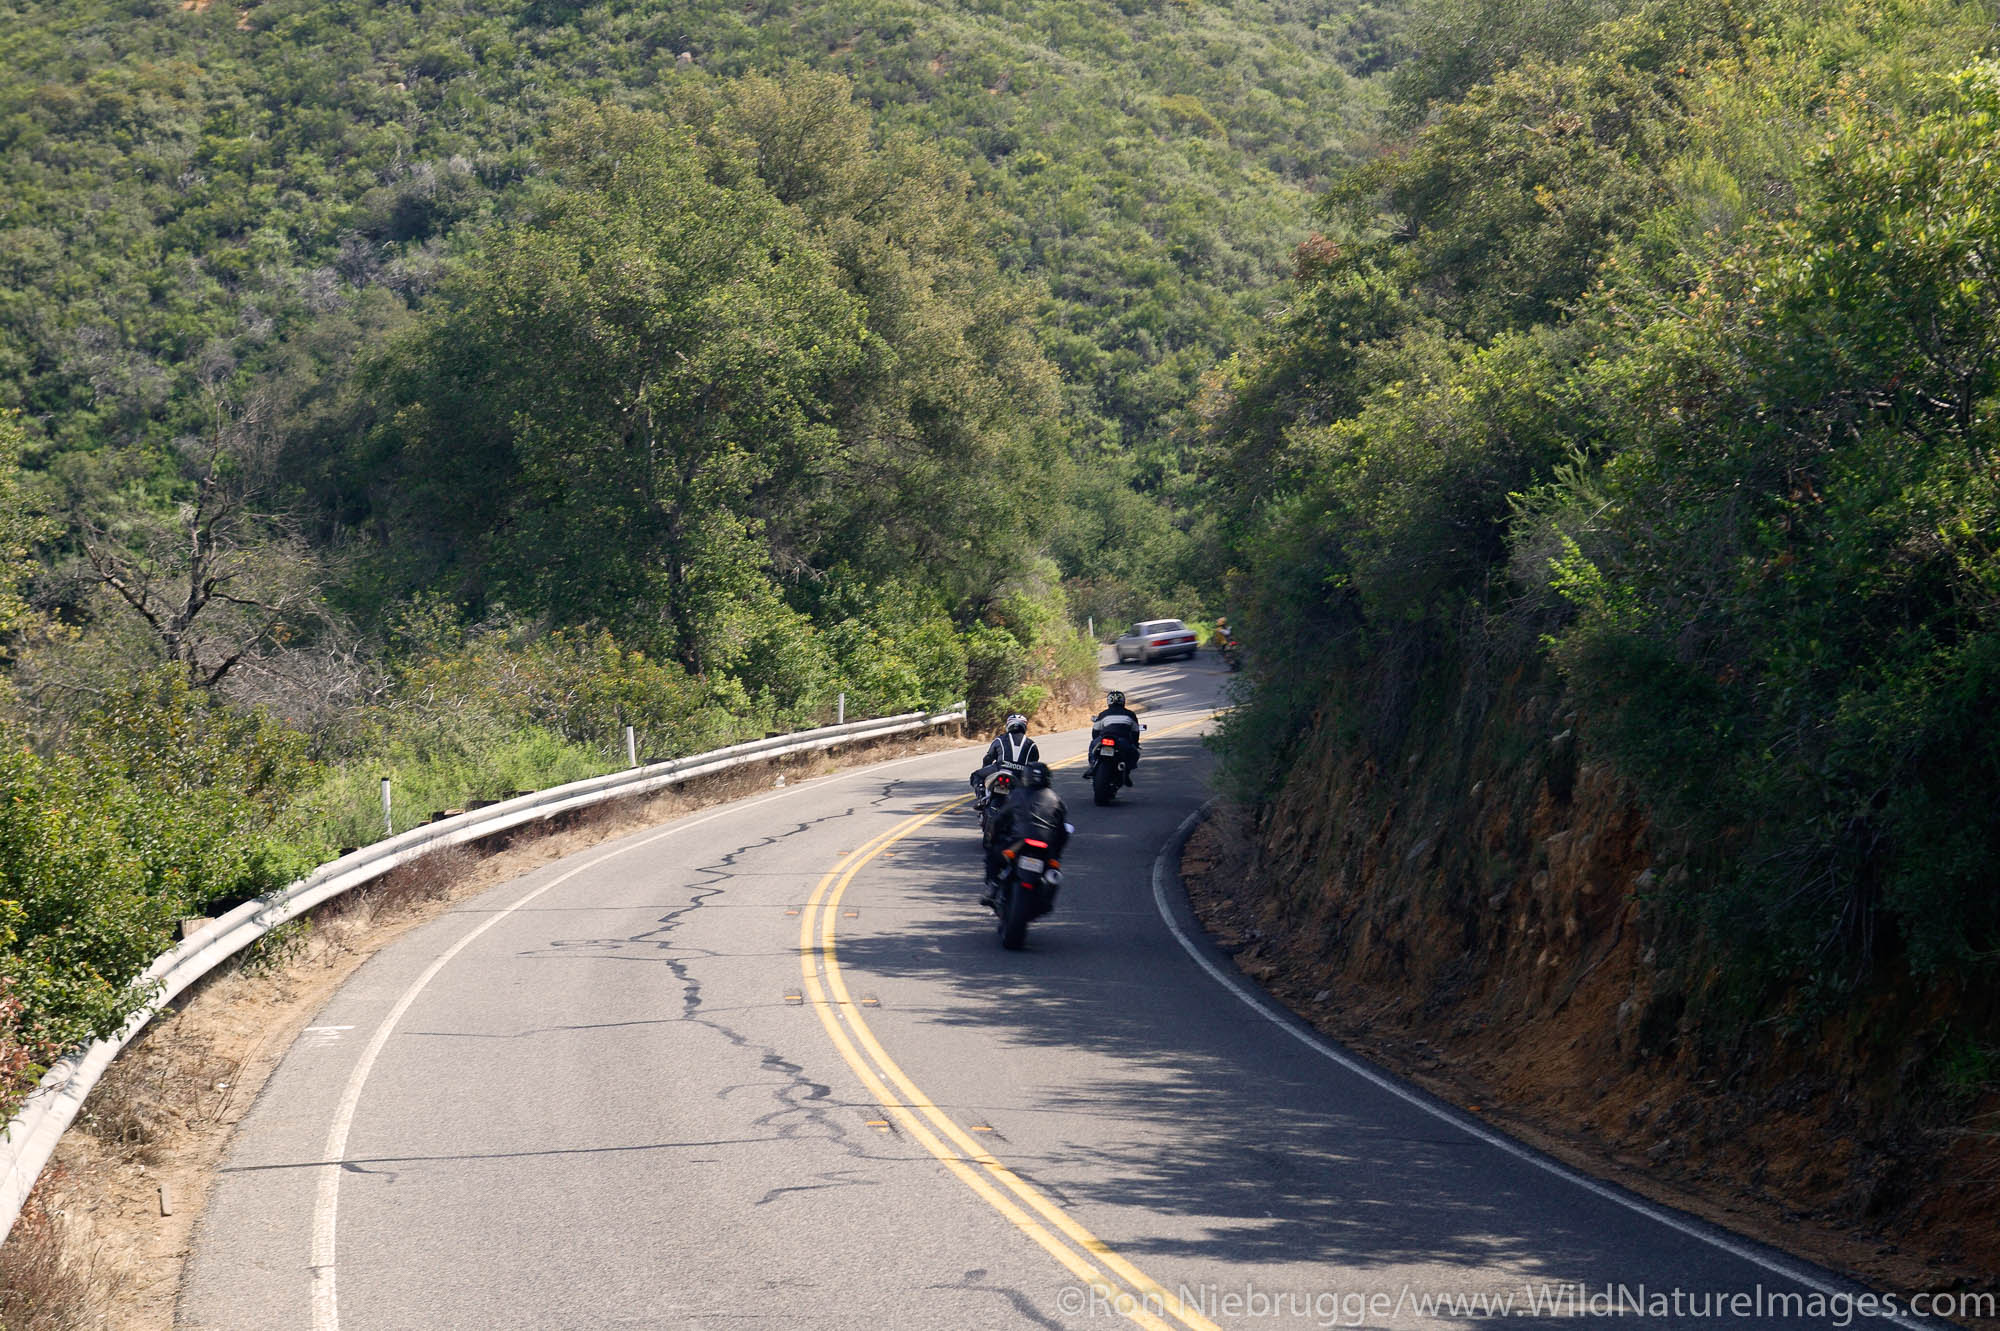 Motorcycles on the Ortega Highway or Highway 74, Orange County, Southern, California.